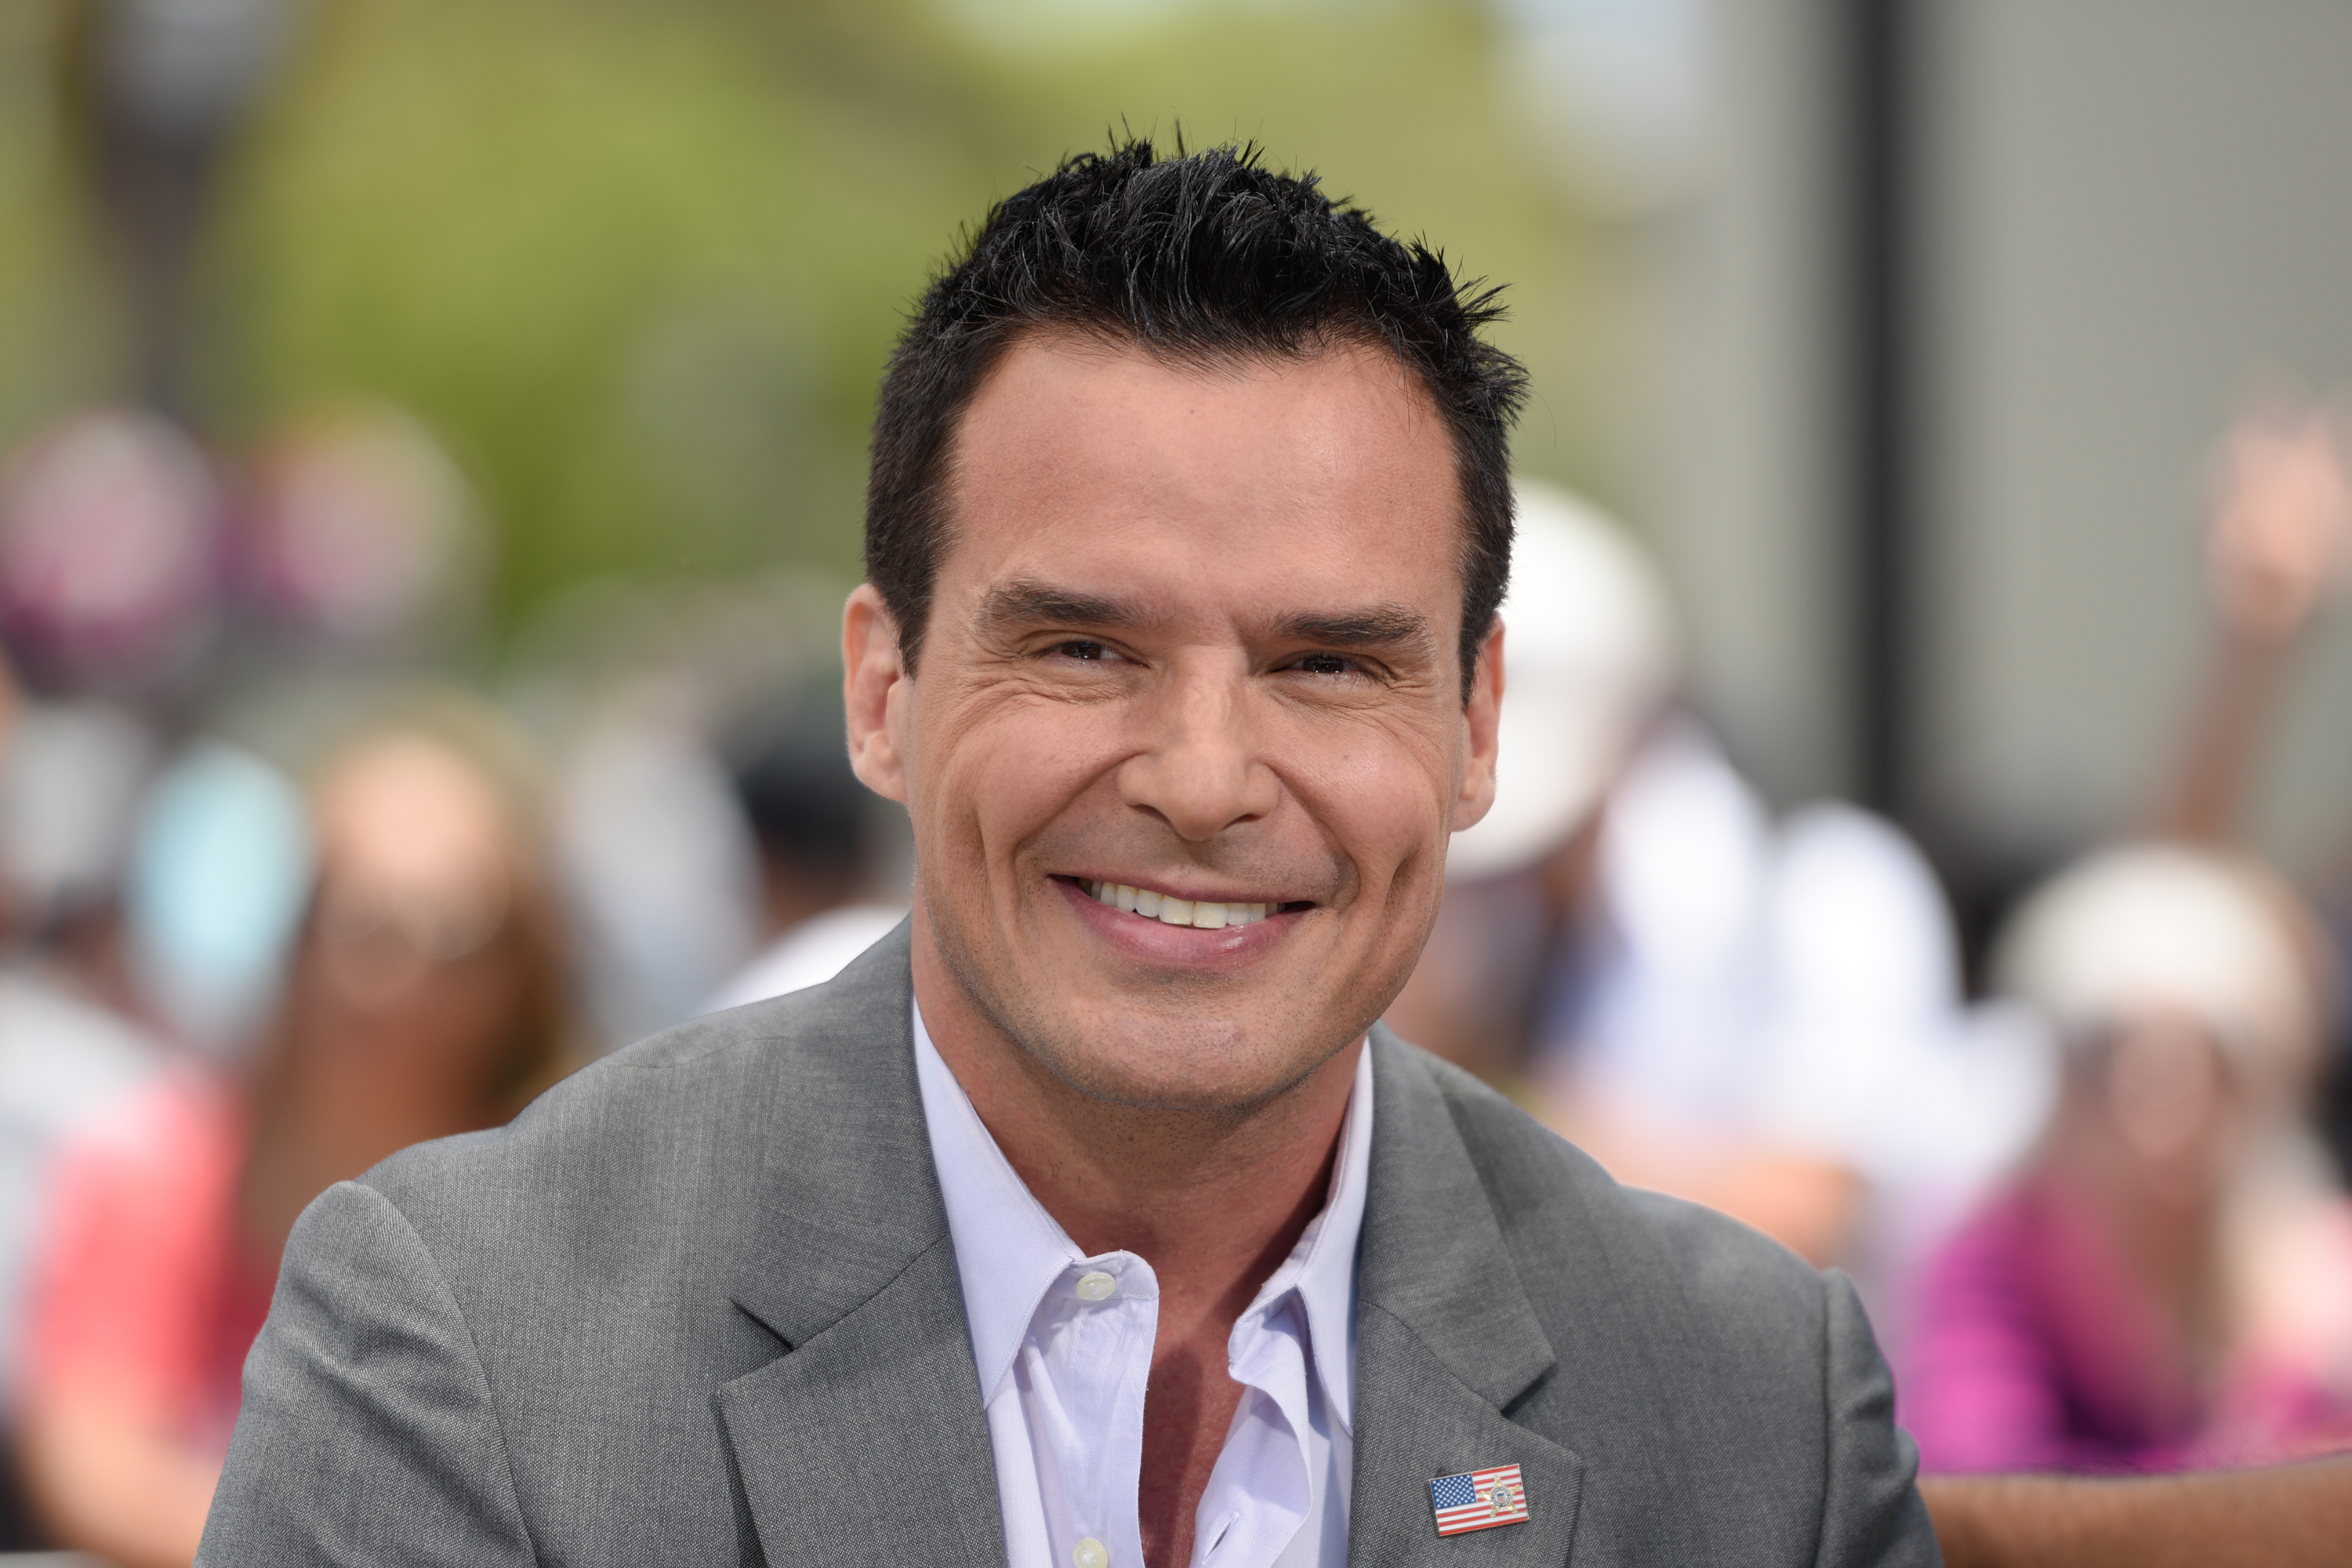 Antonio Sabato Jr. says supporting Trump ended his career in Hollywood